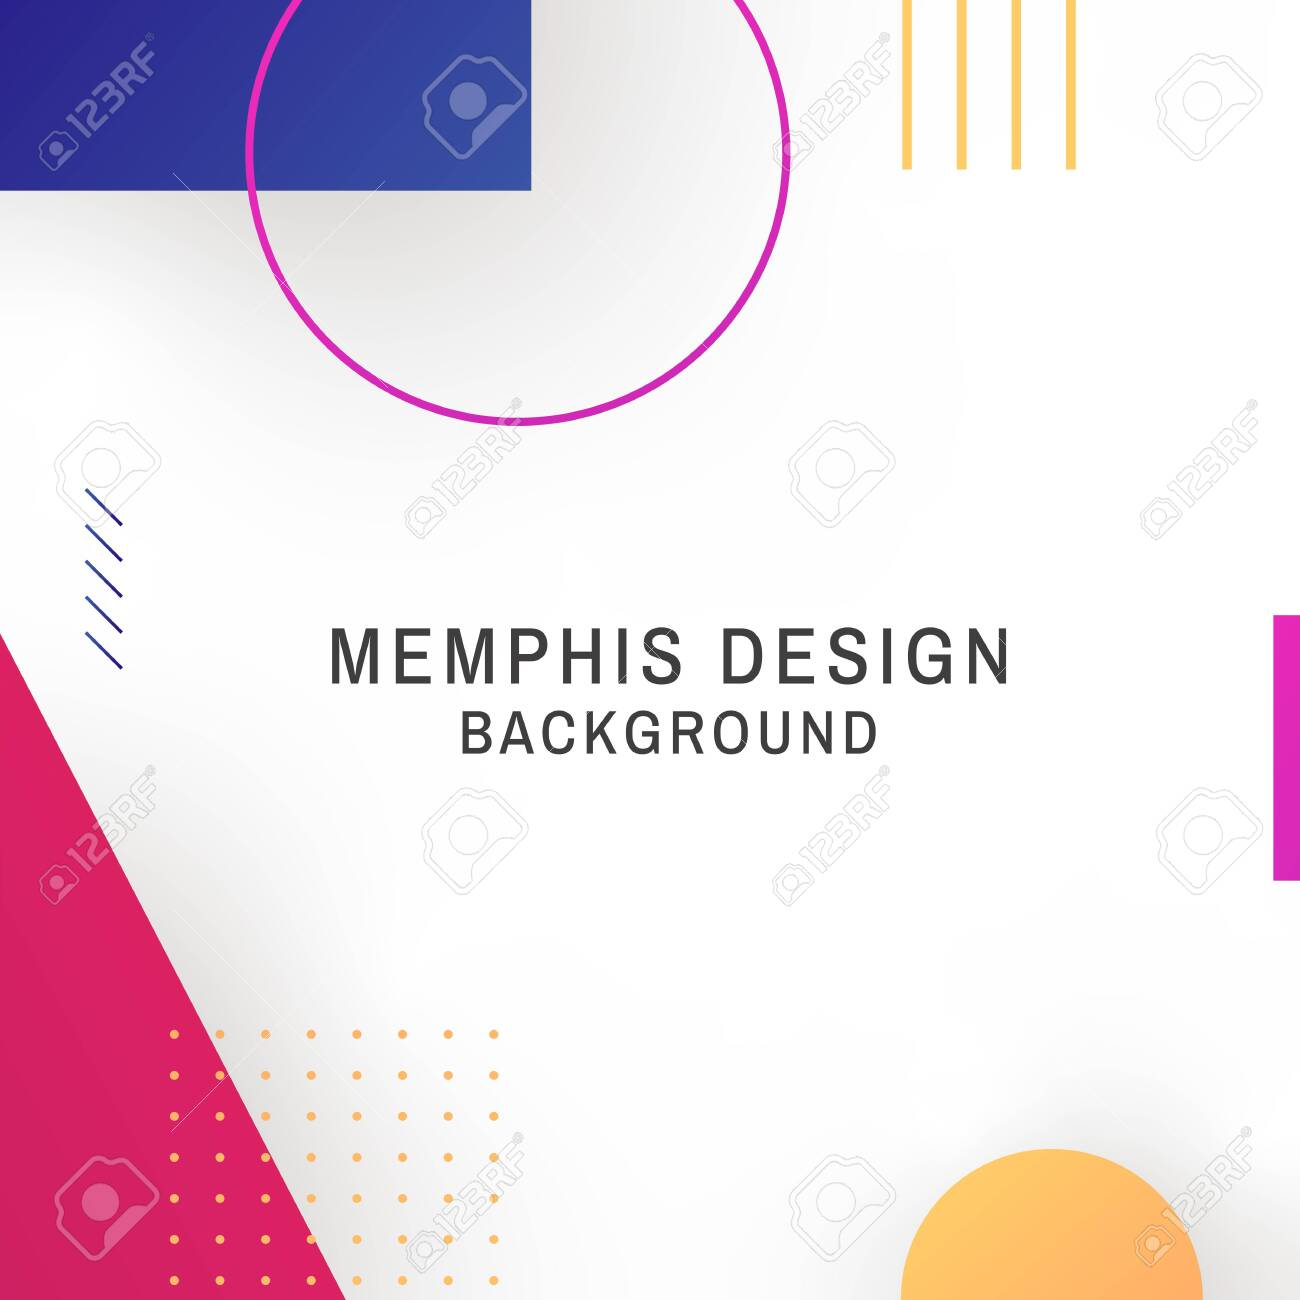 Colorful geometric white memphis background vector - 120963665